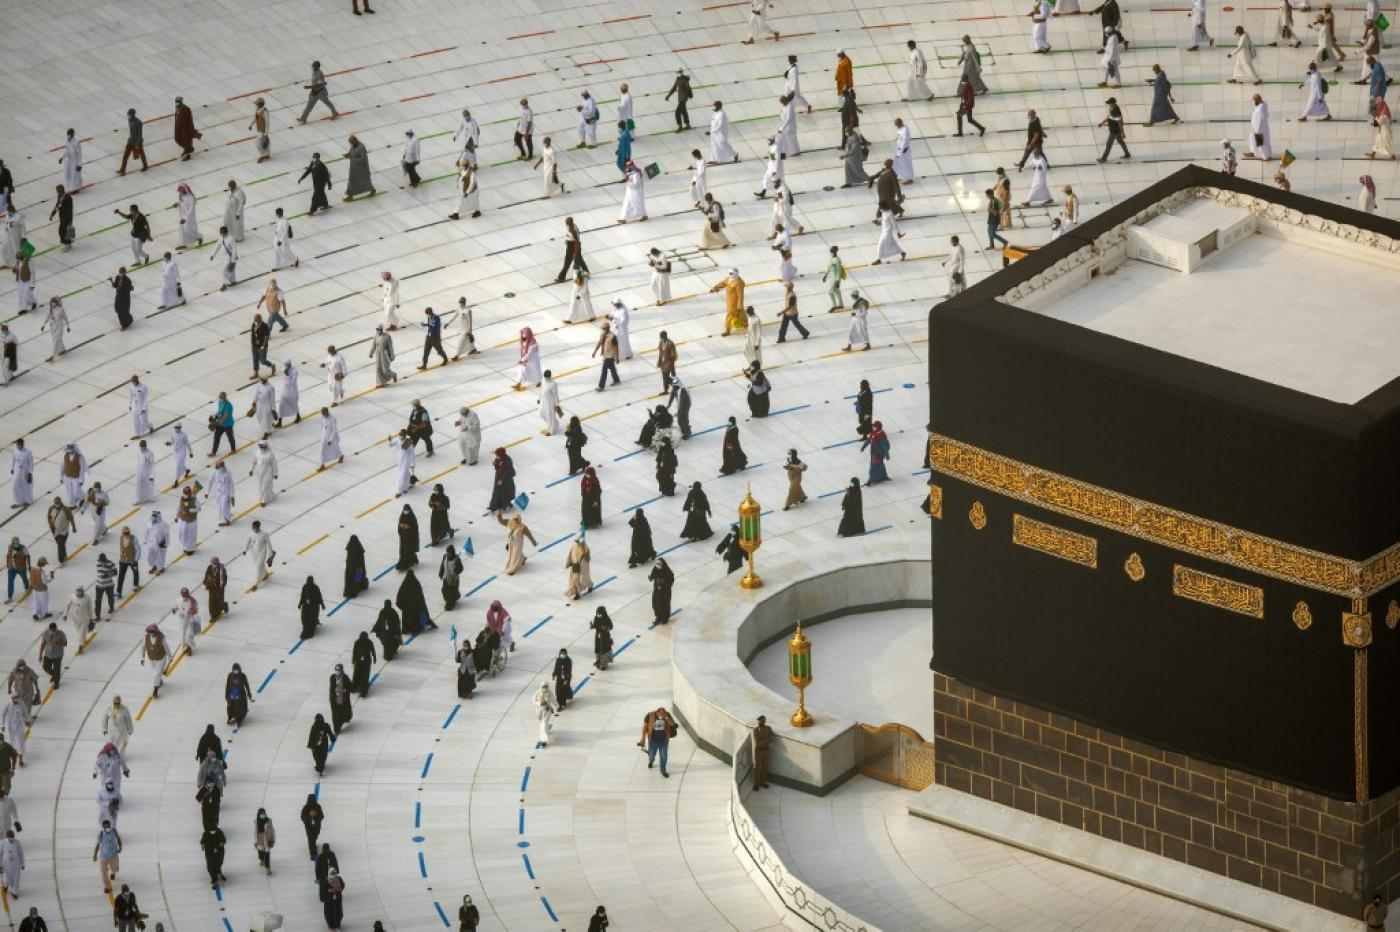 Saudi Arabia to begin allowing Umrah for citizens and residents